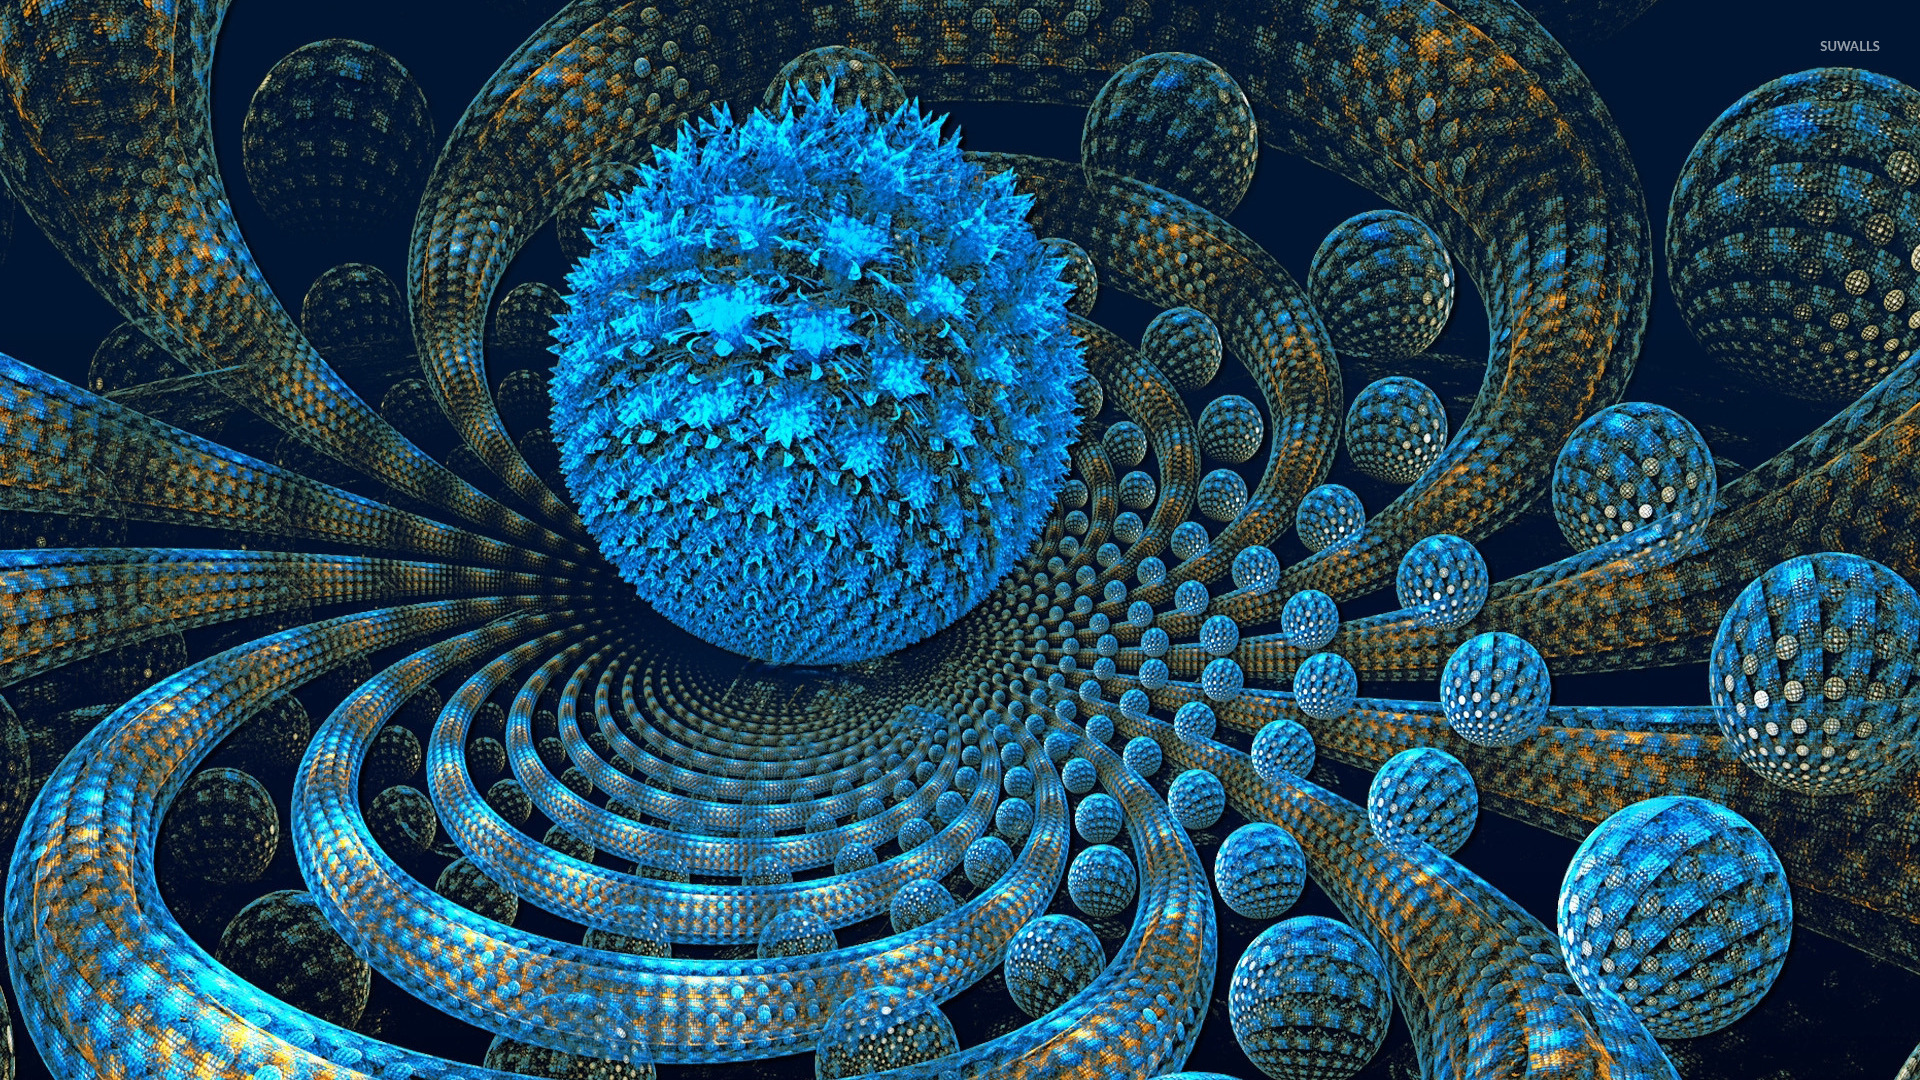 Mind Blowing 3d Wallpapers Blue Fractal Orbs Wallpaper 3d Wallpapers 45383